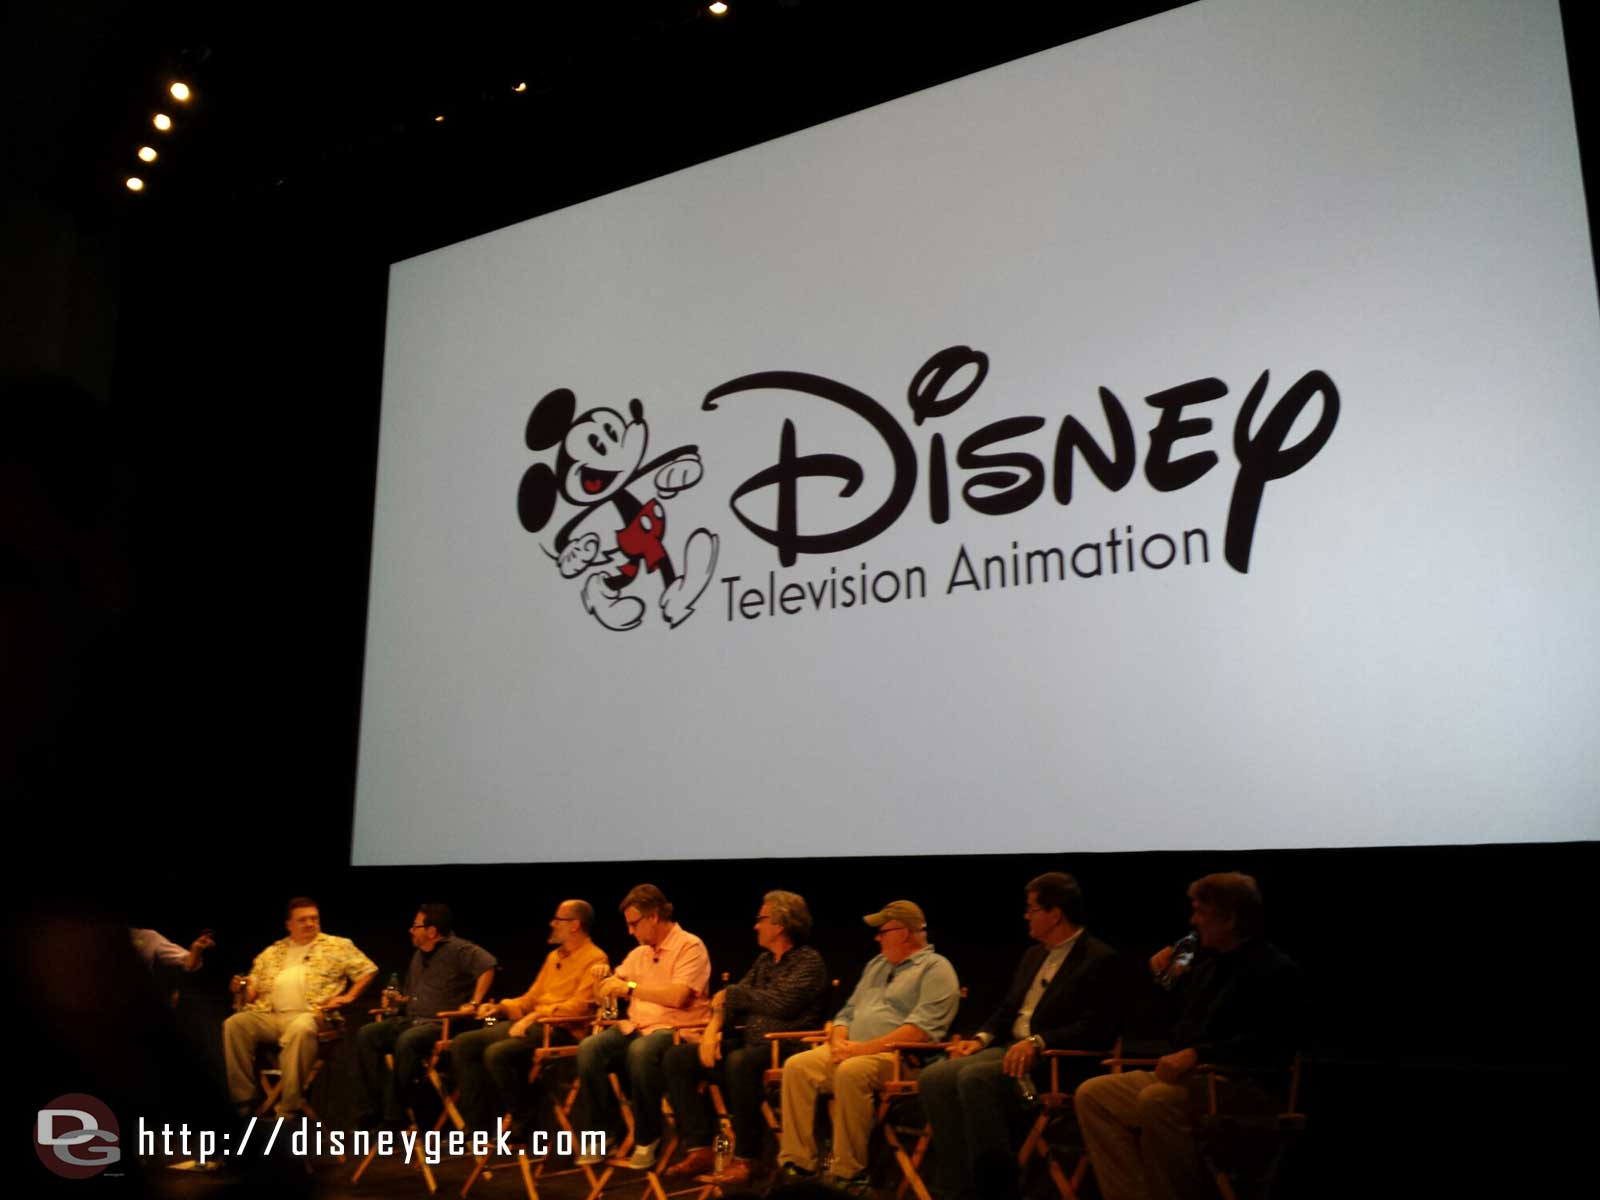 The panel for tonight's Disney Television Animation & @DisneyD23 event